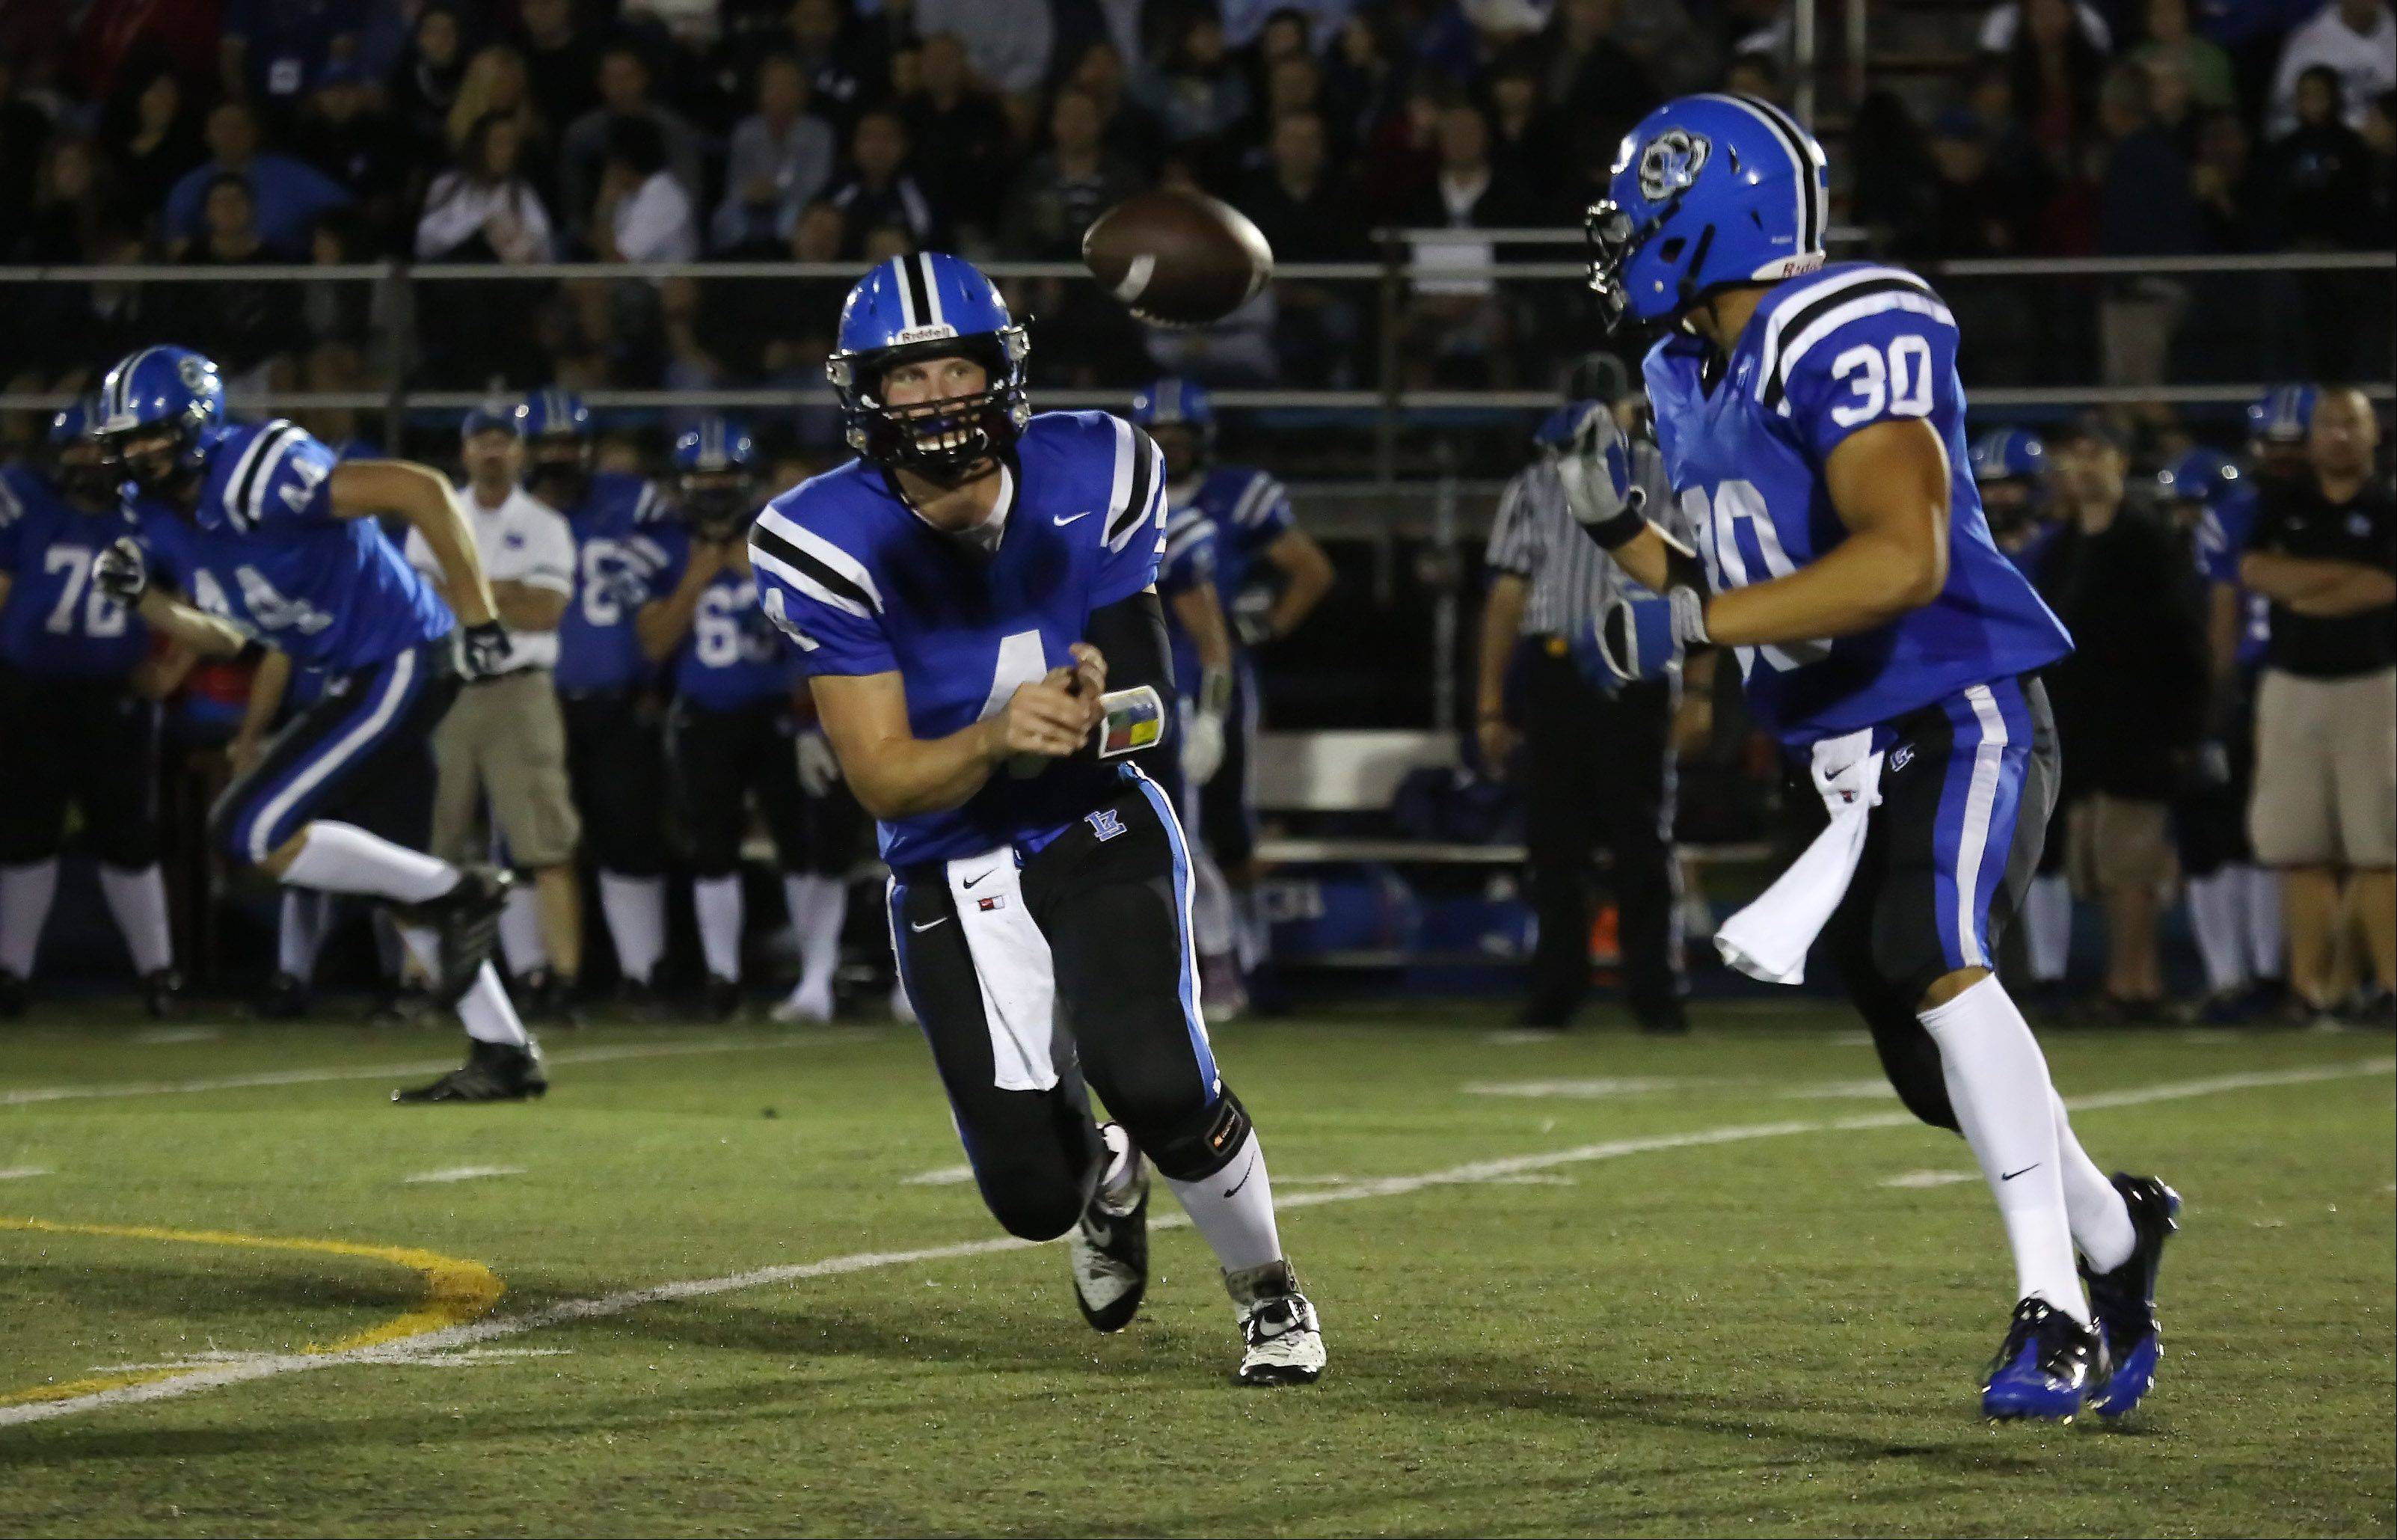 Lake Zurich hangs in, hangs on against Warren